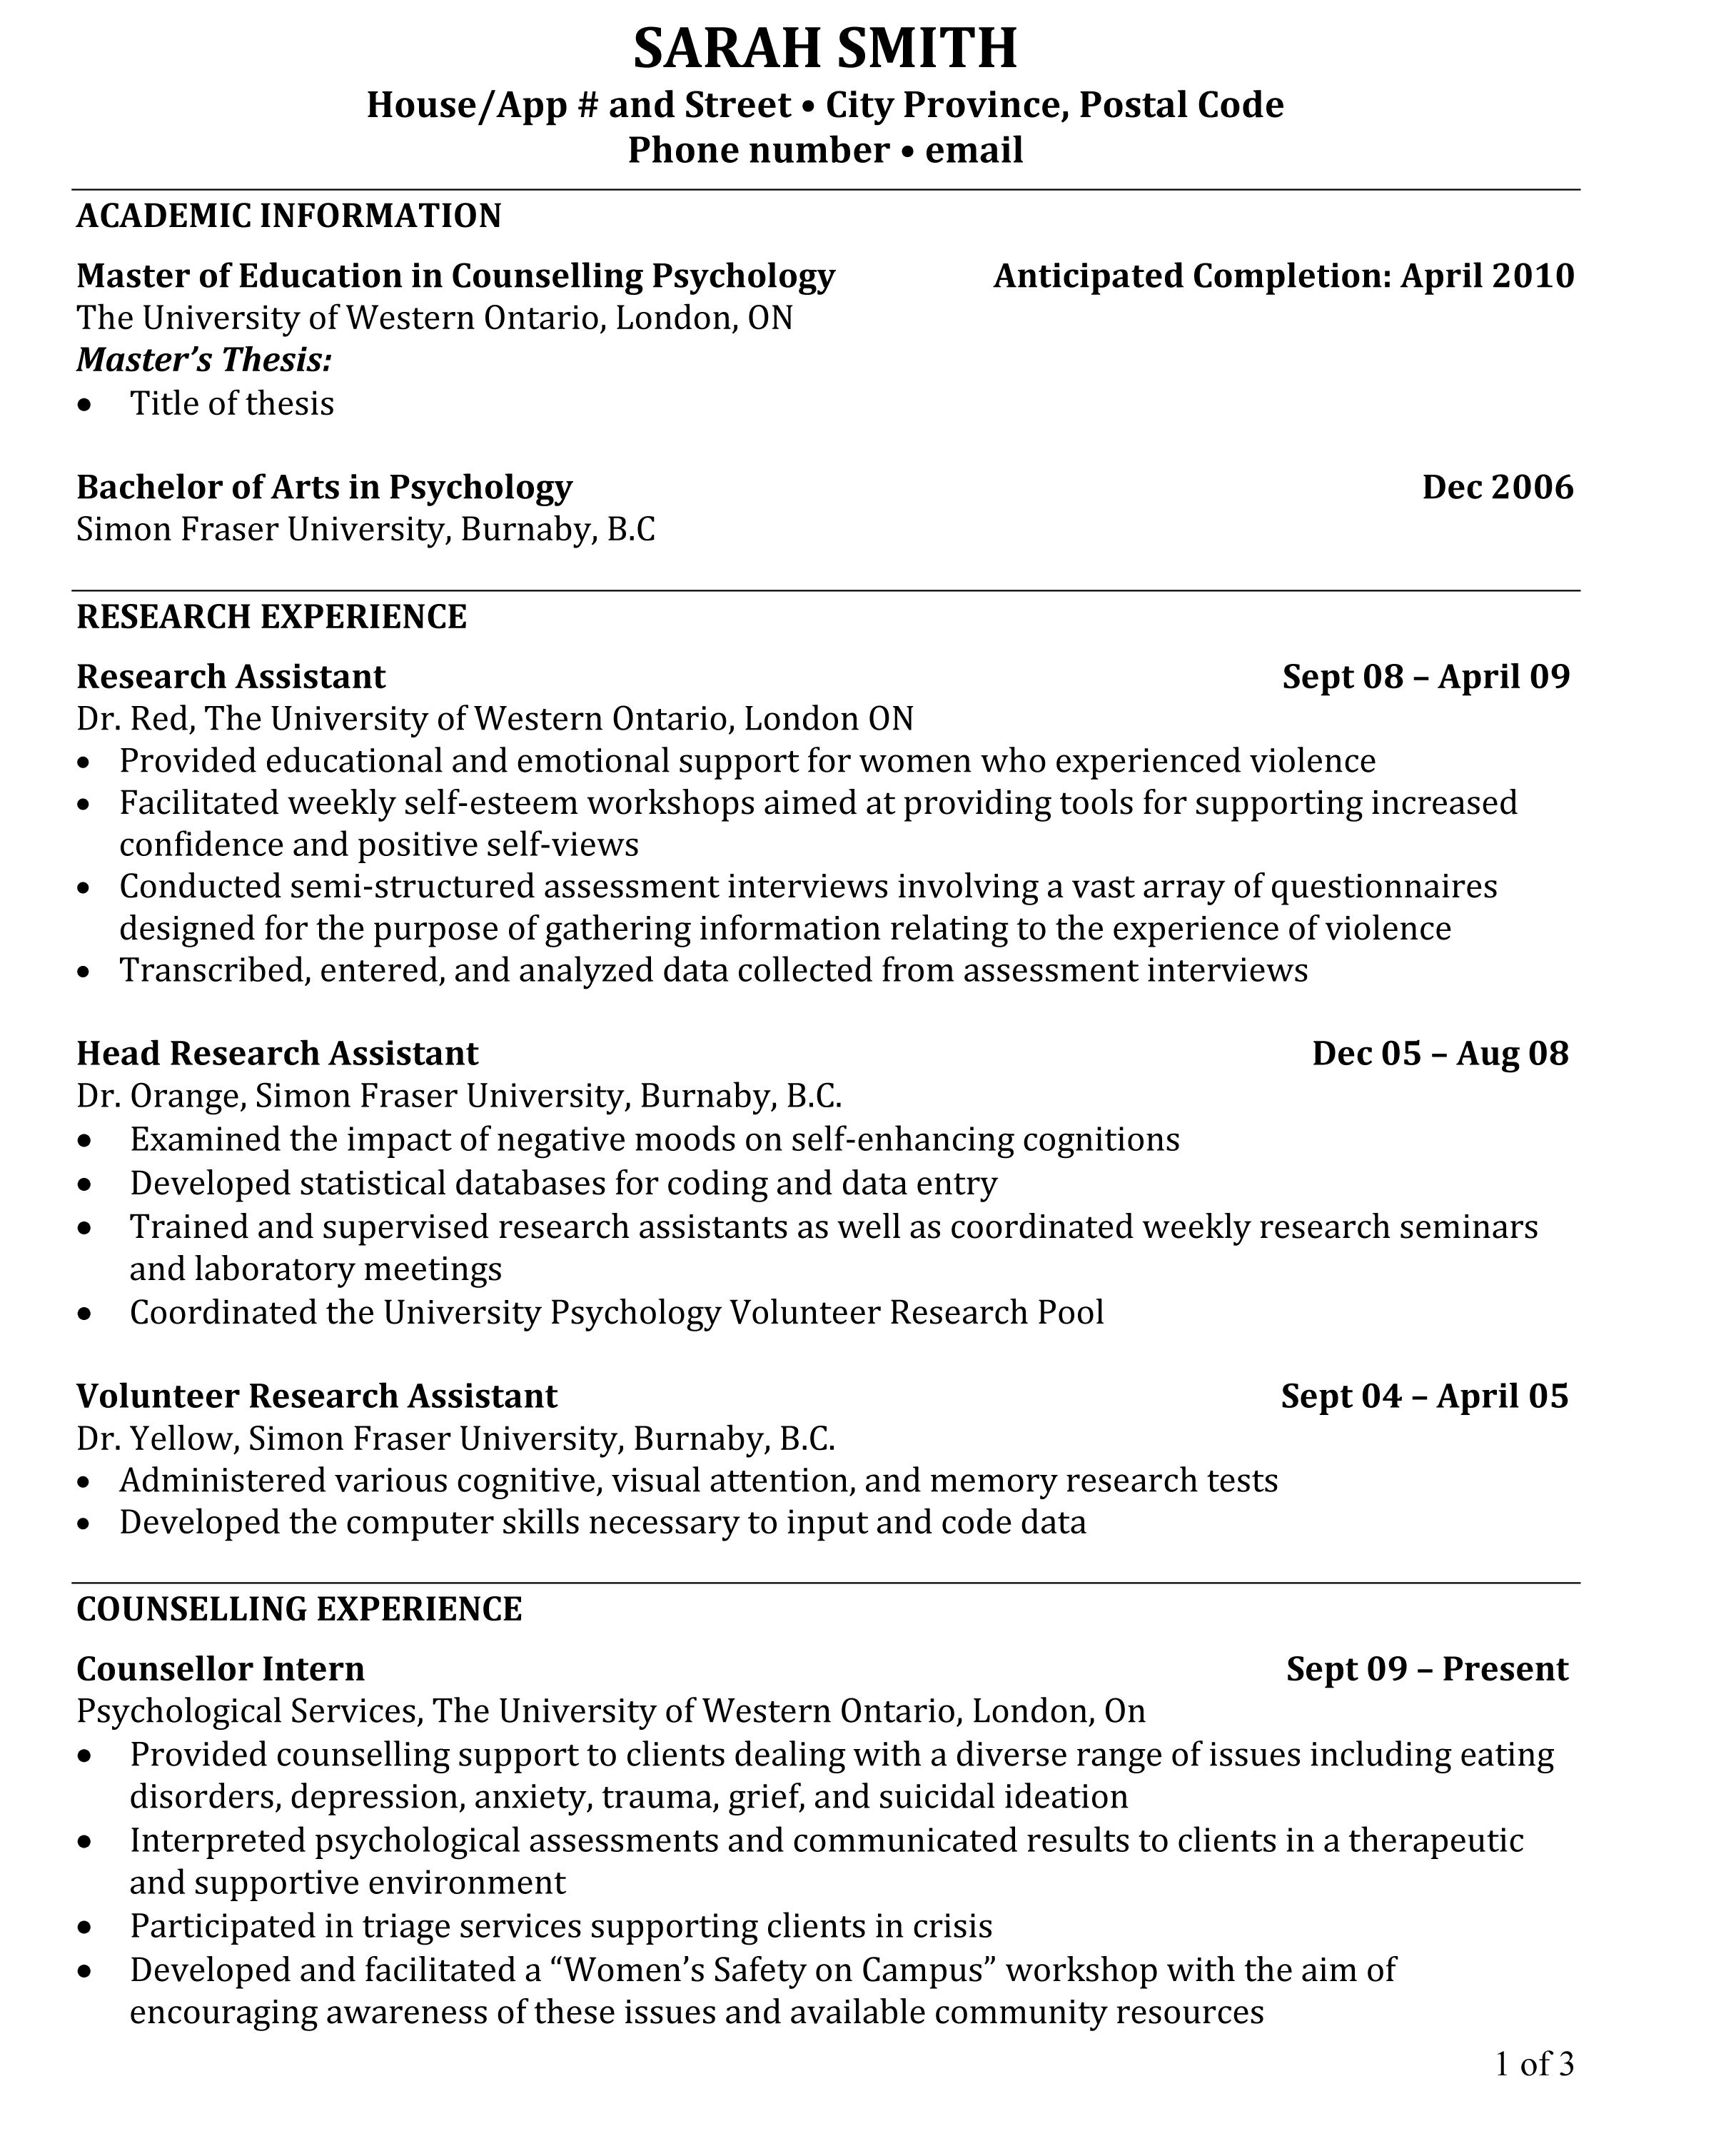 Student Resume Template, Academic